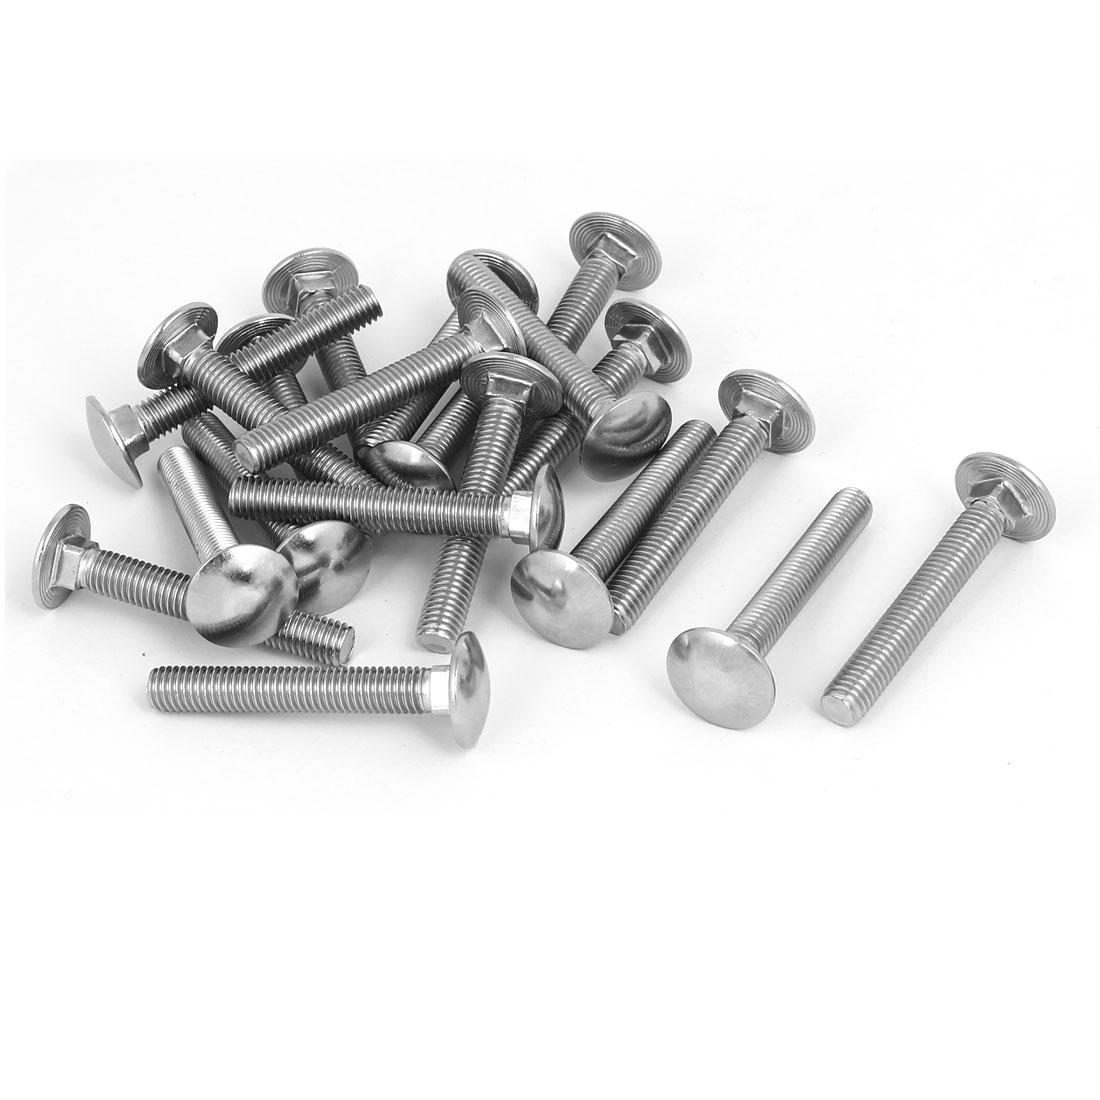 M8x55mm 304 Stainless Steel Round Cap Square Neck Trailer Carriage Bolts 20pcs